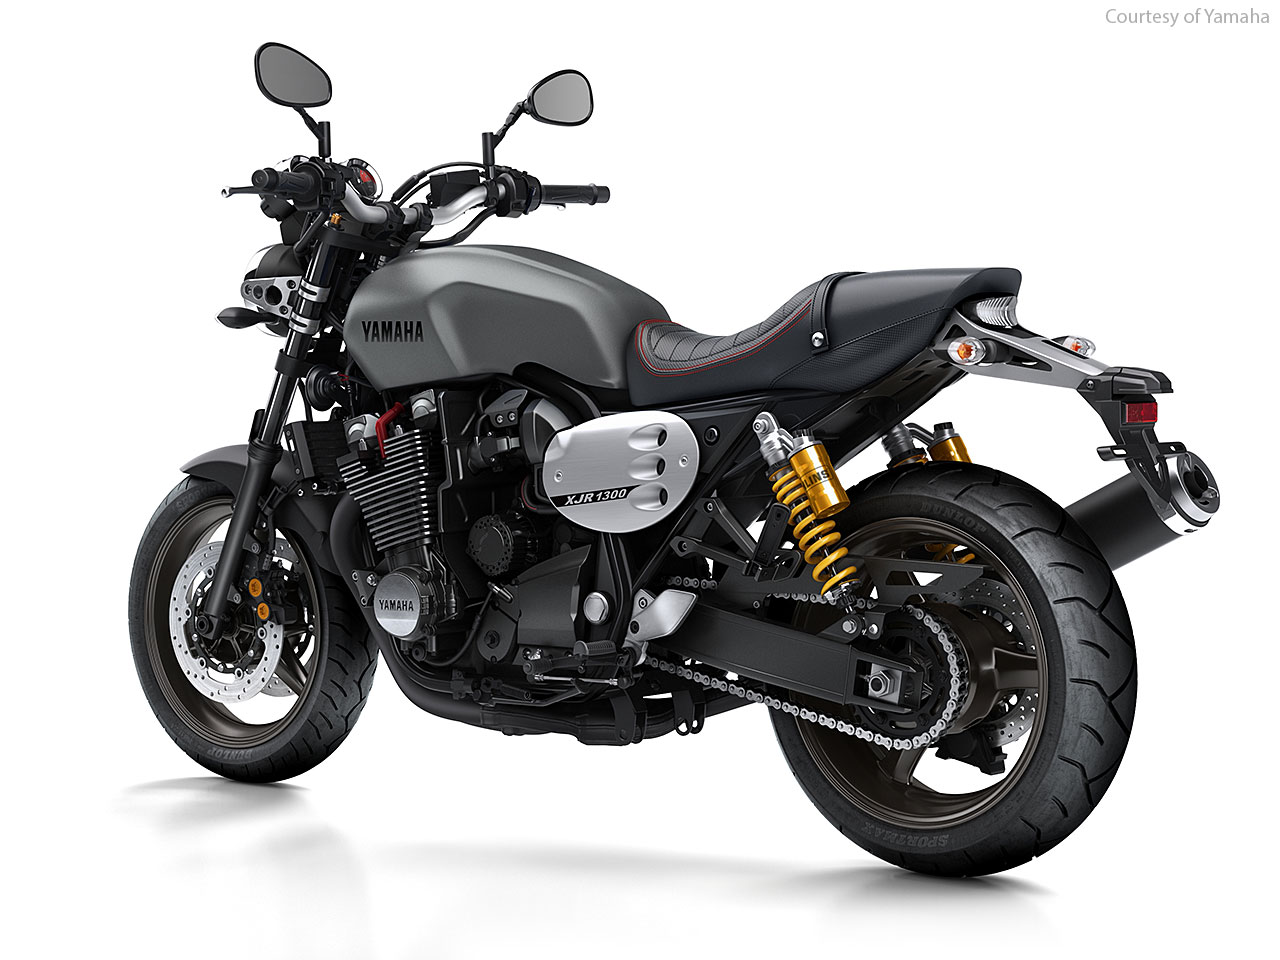 Yamaha xjr1300 photo - 9